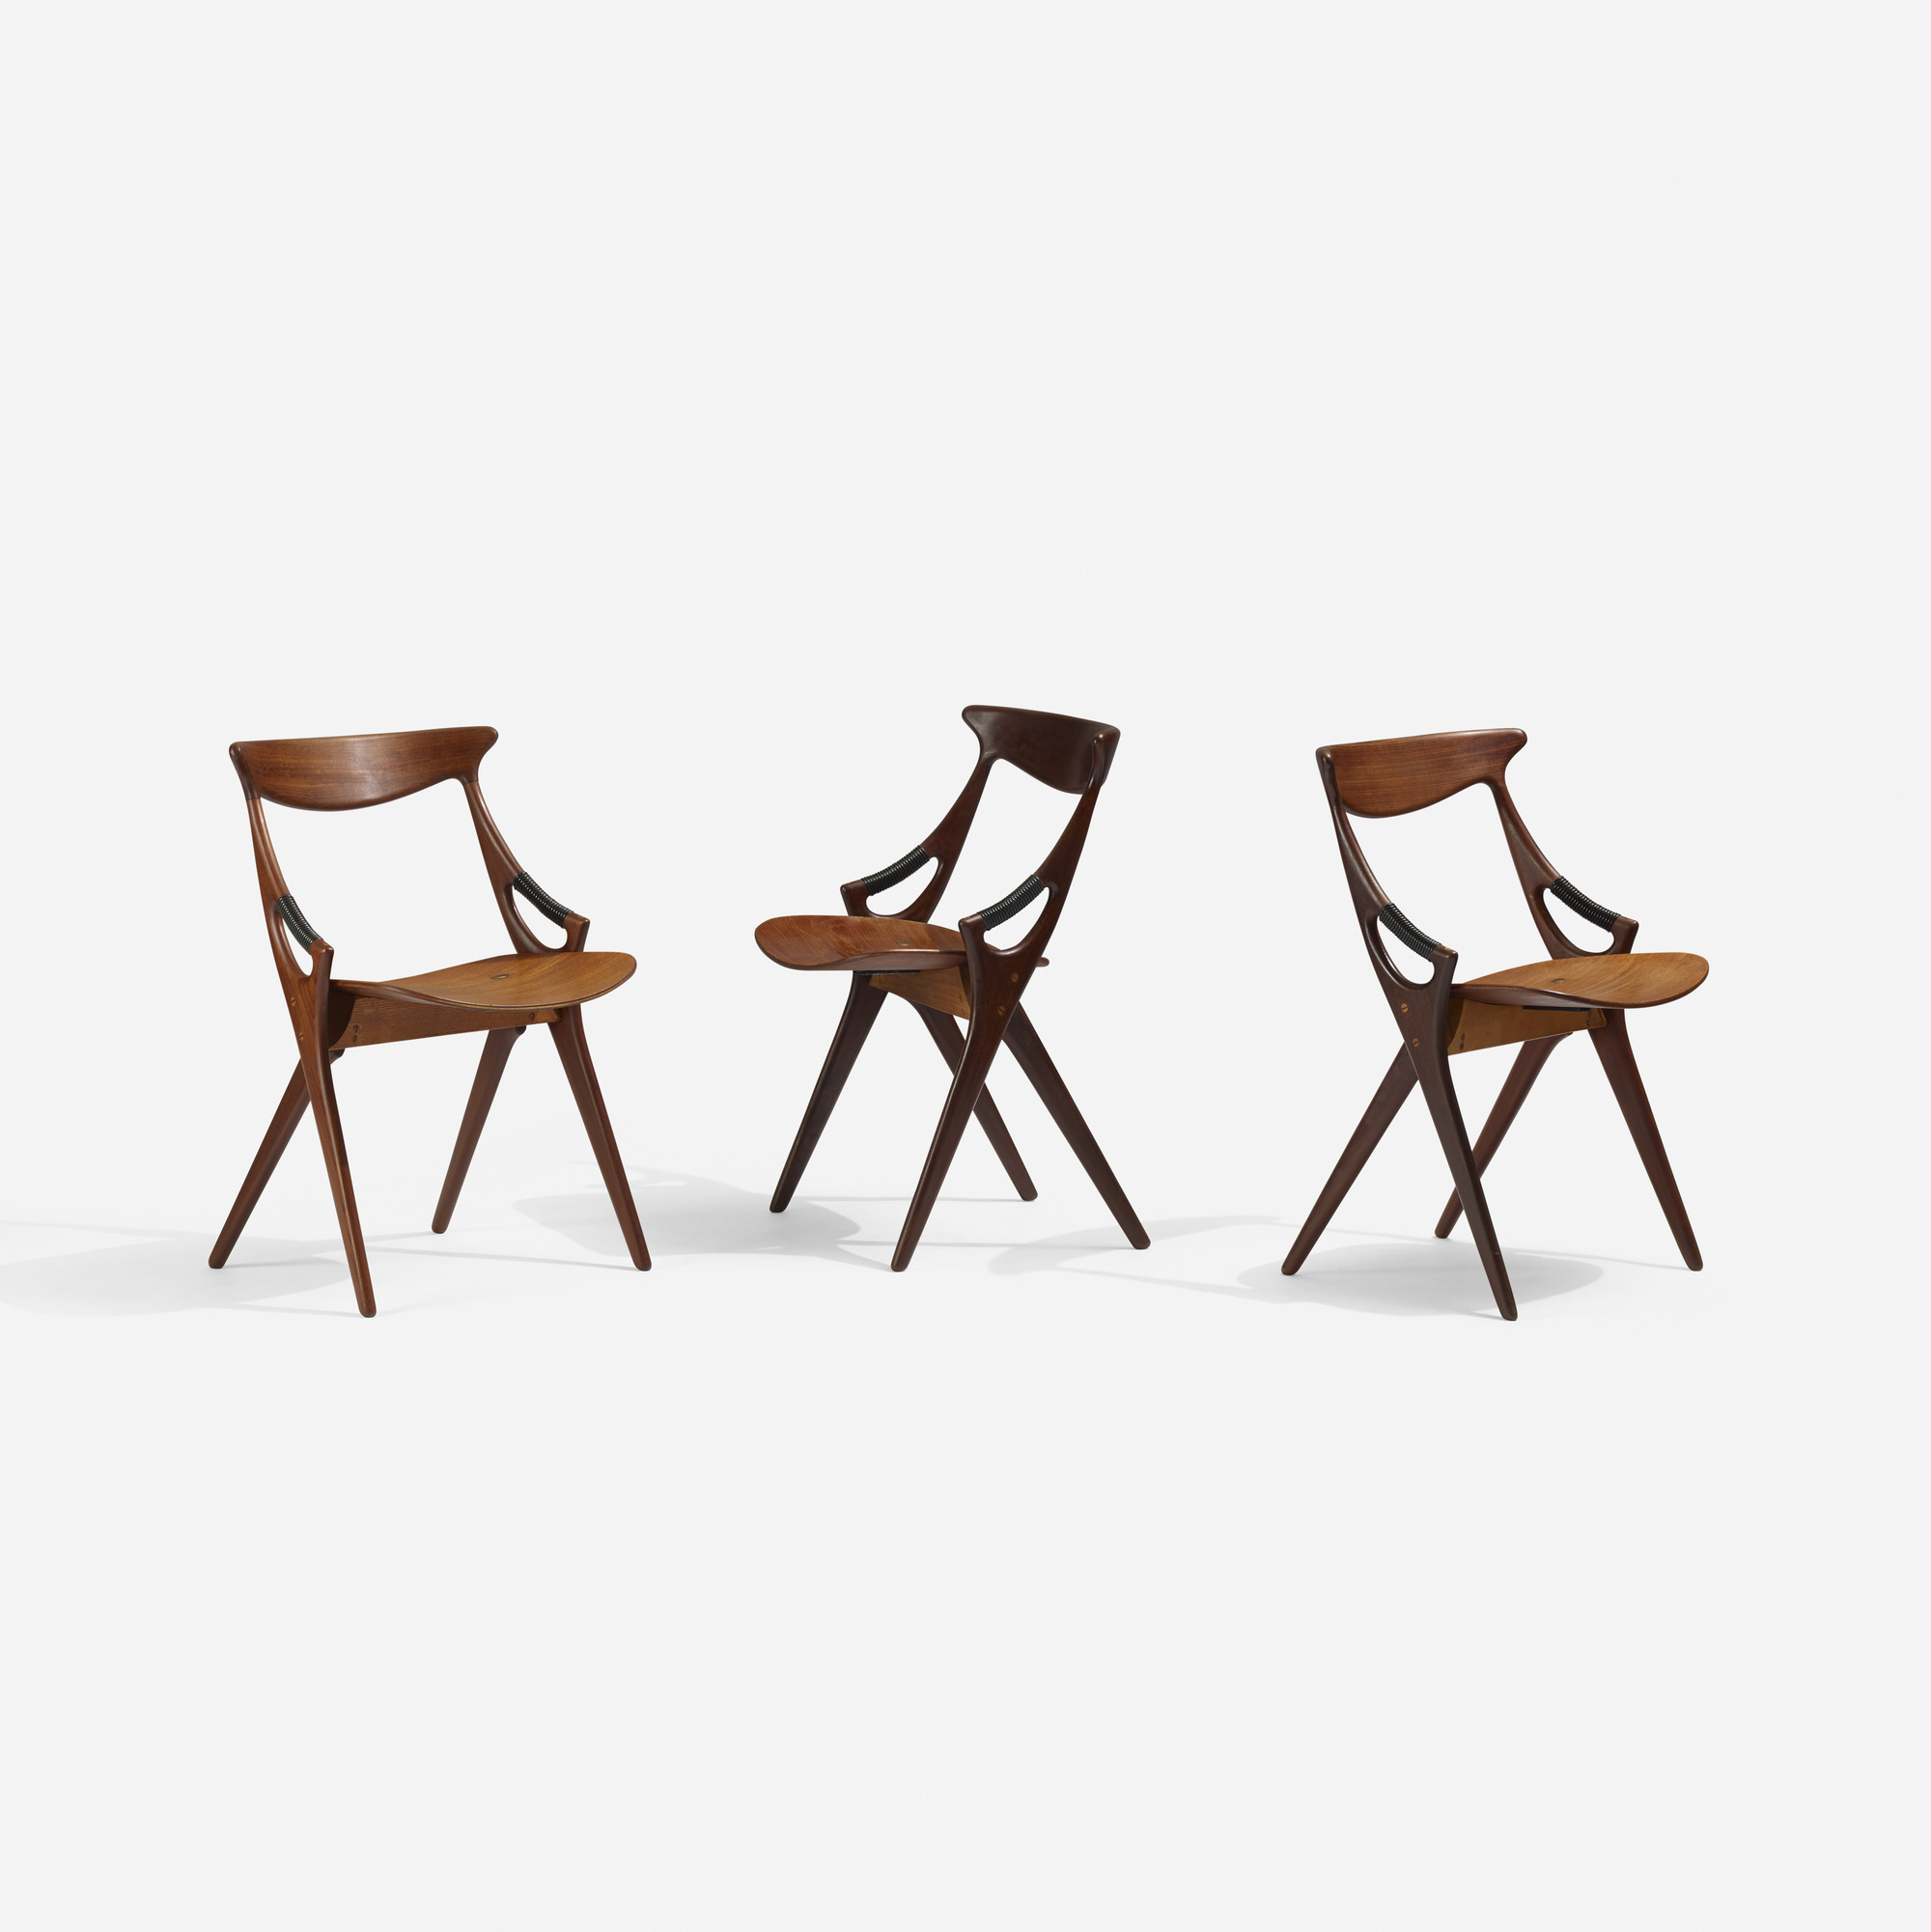 325: Arne Hovmand-Olsen / dining chairs model 71, set of six (2 of 2)